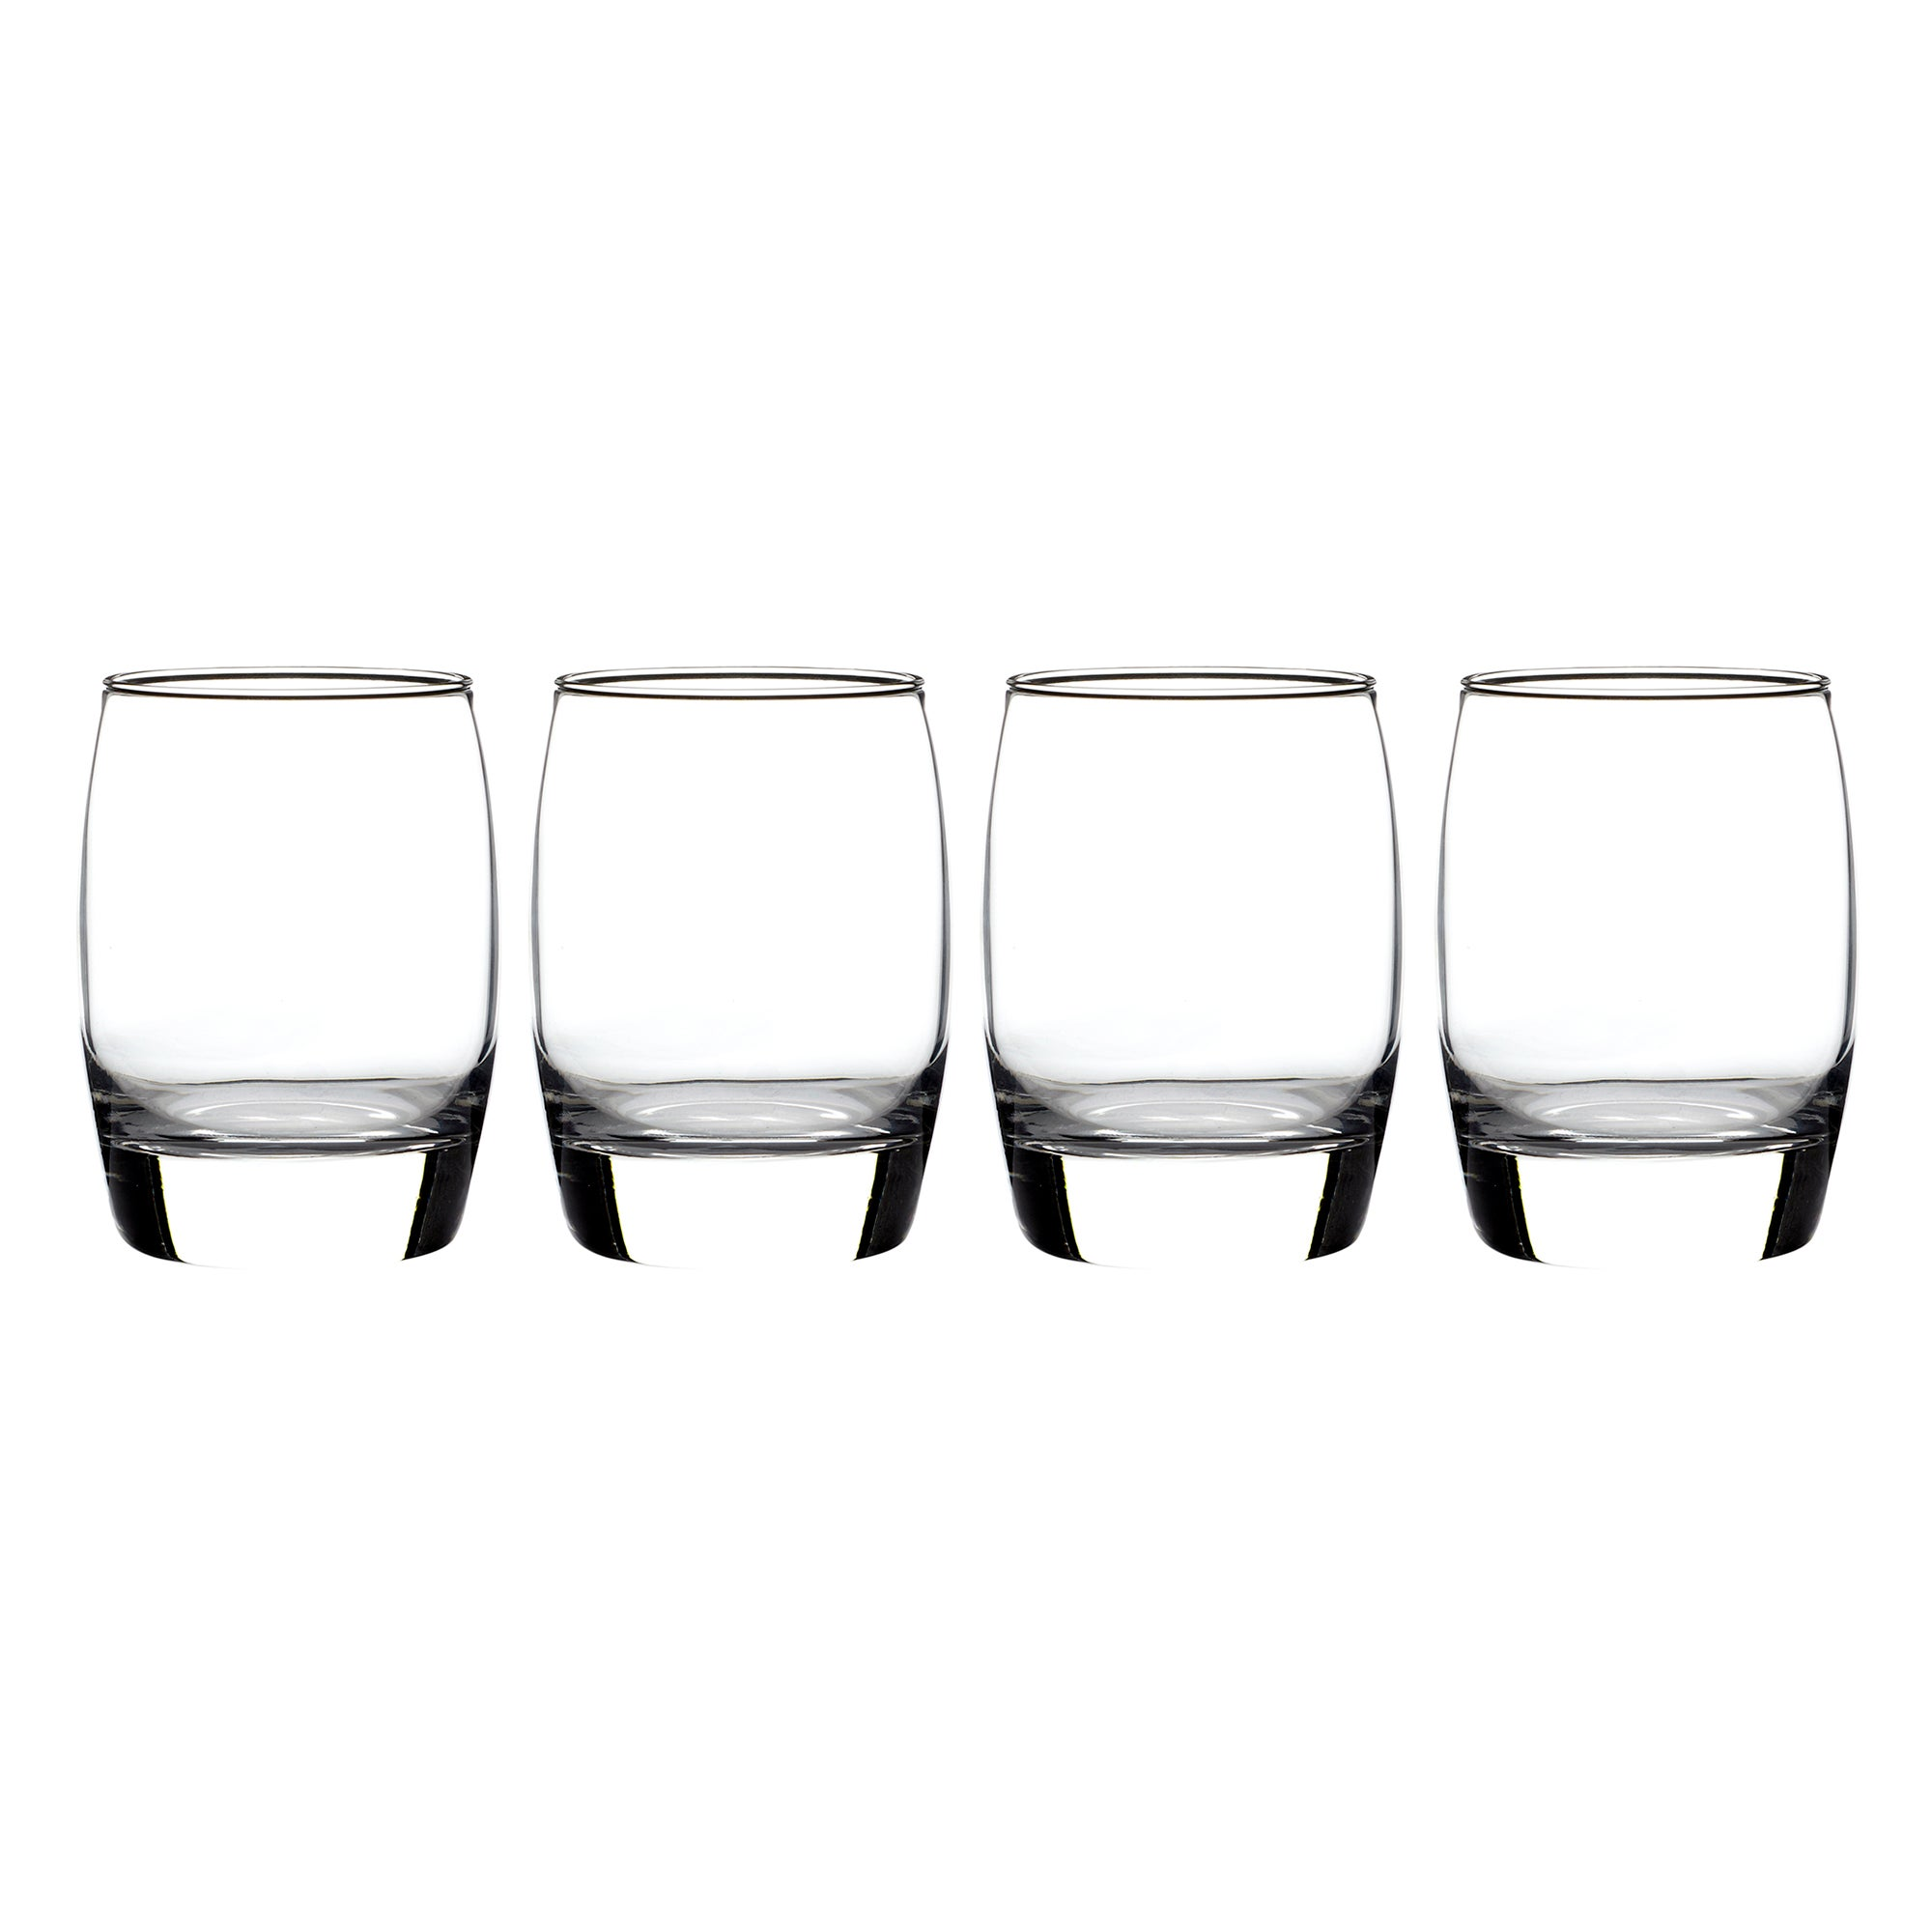 4 Pausa Collection Endessa Mixer Glasses